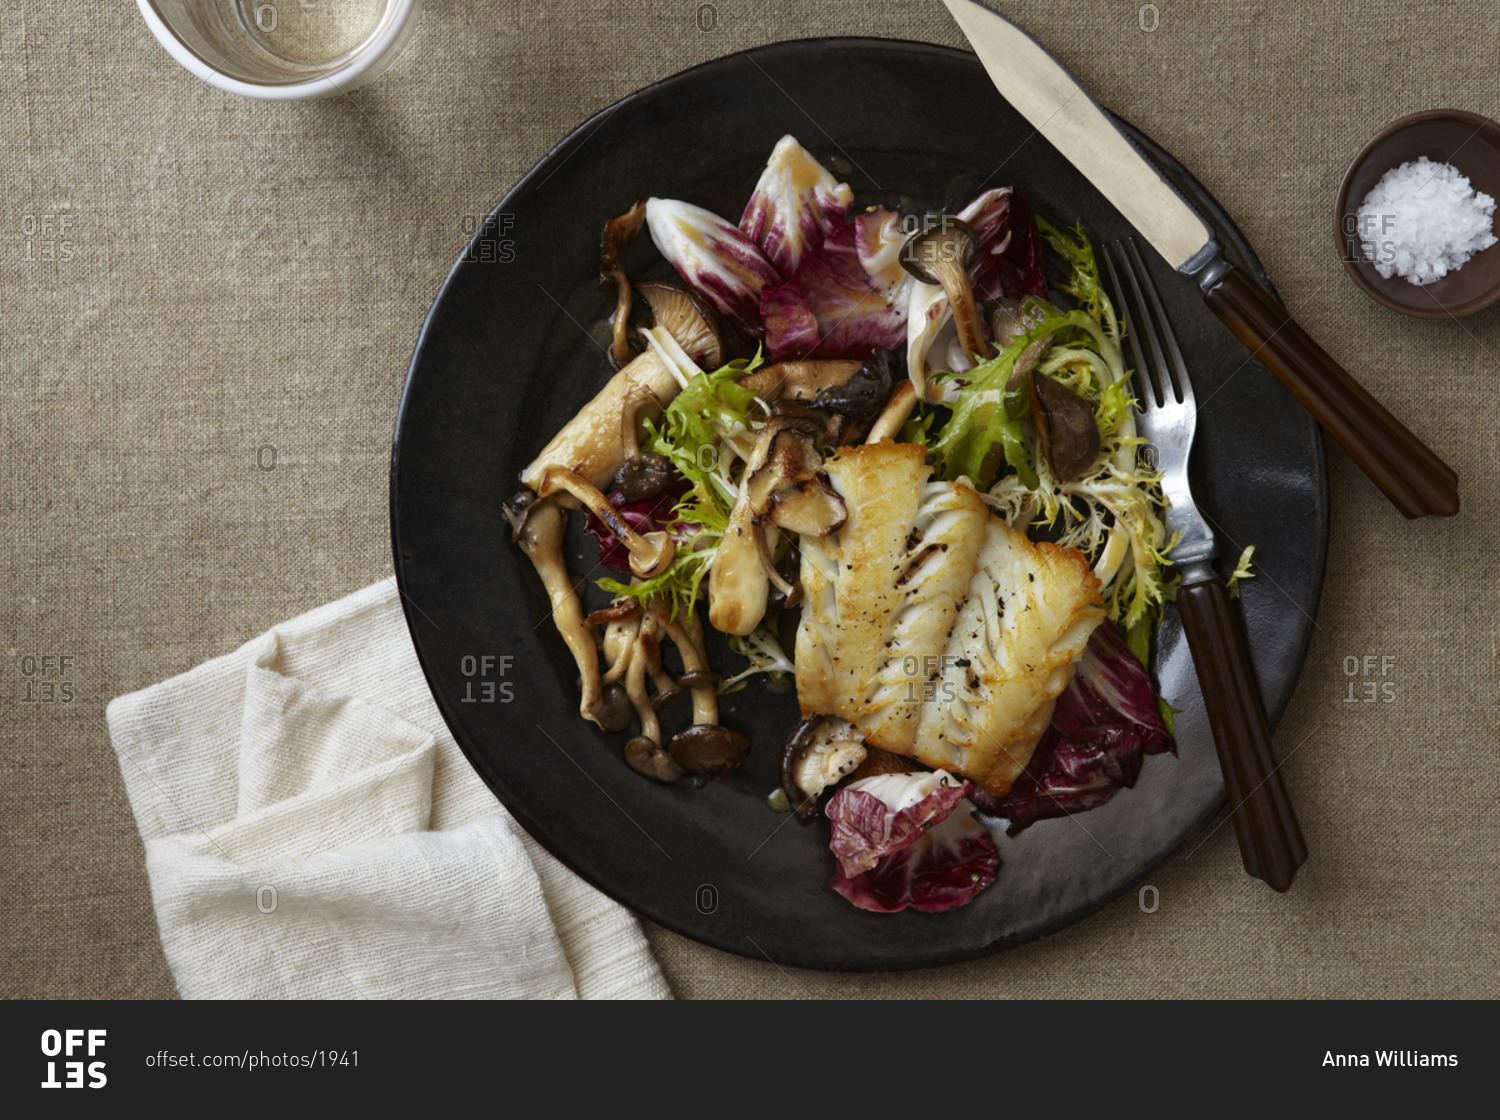 Roasted White Fish Fillet Meal With Radicchio Mushroom And Frisee In A Black Plate